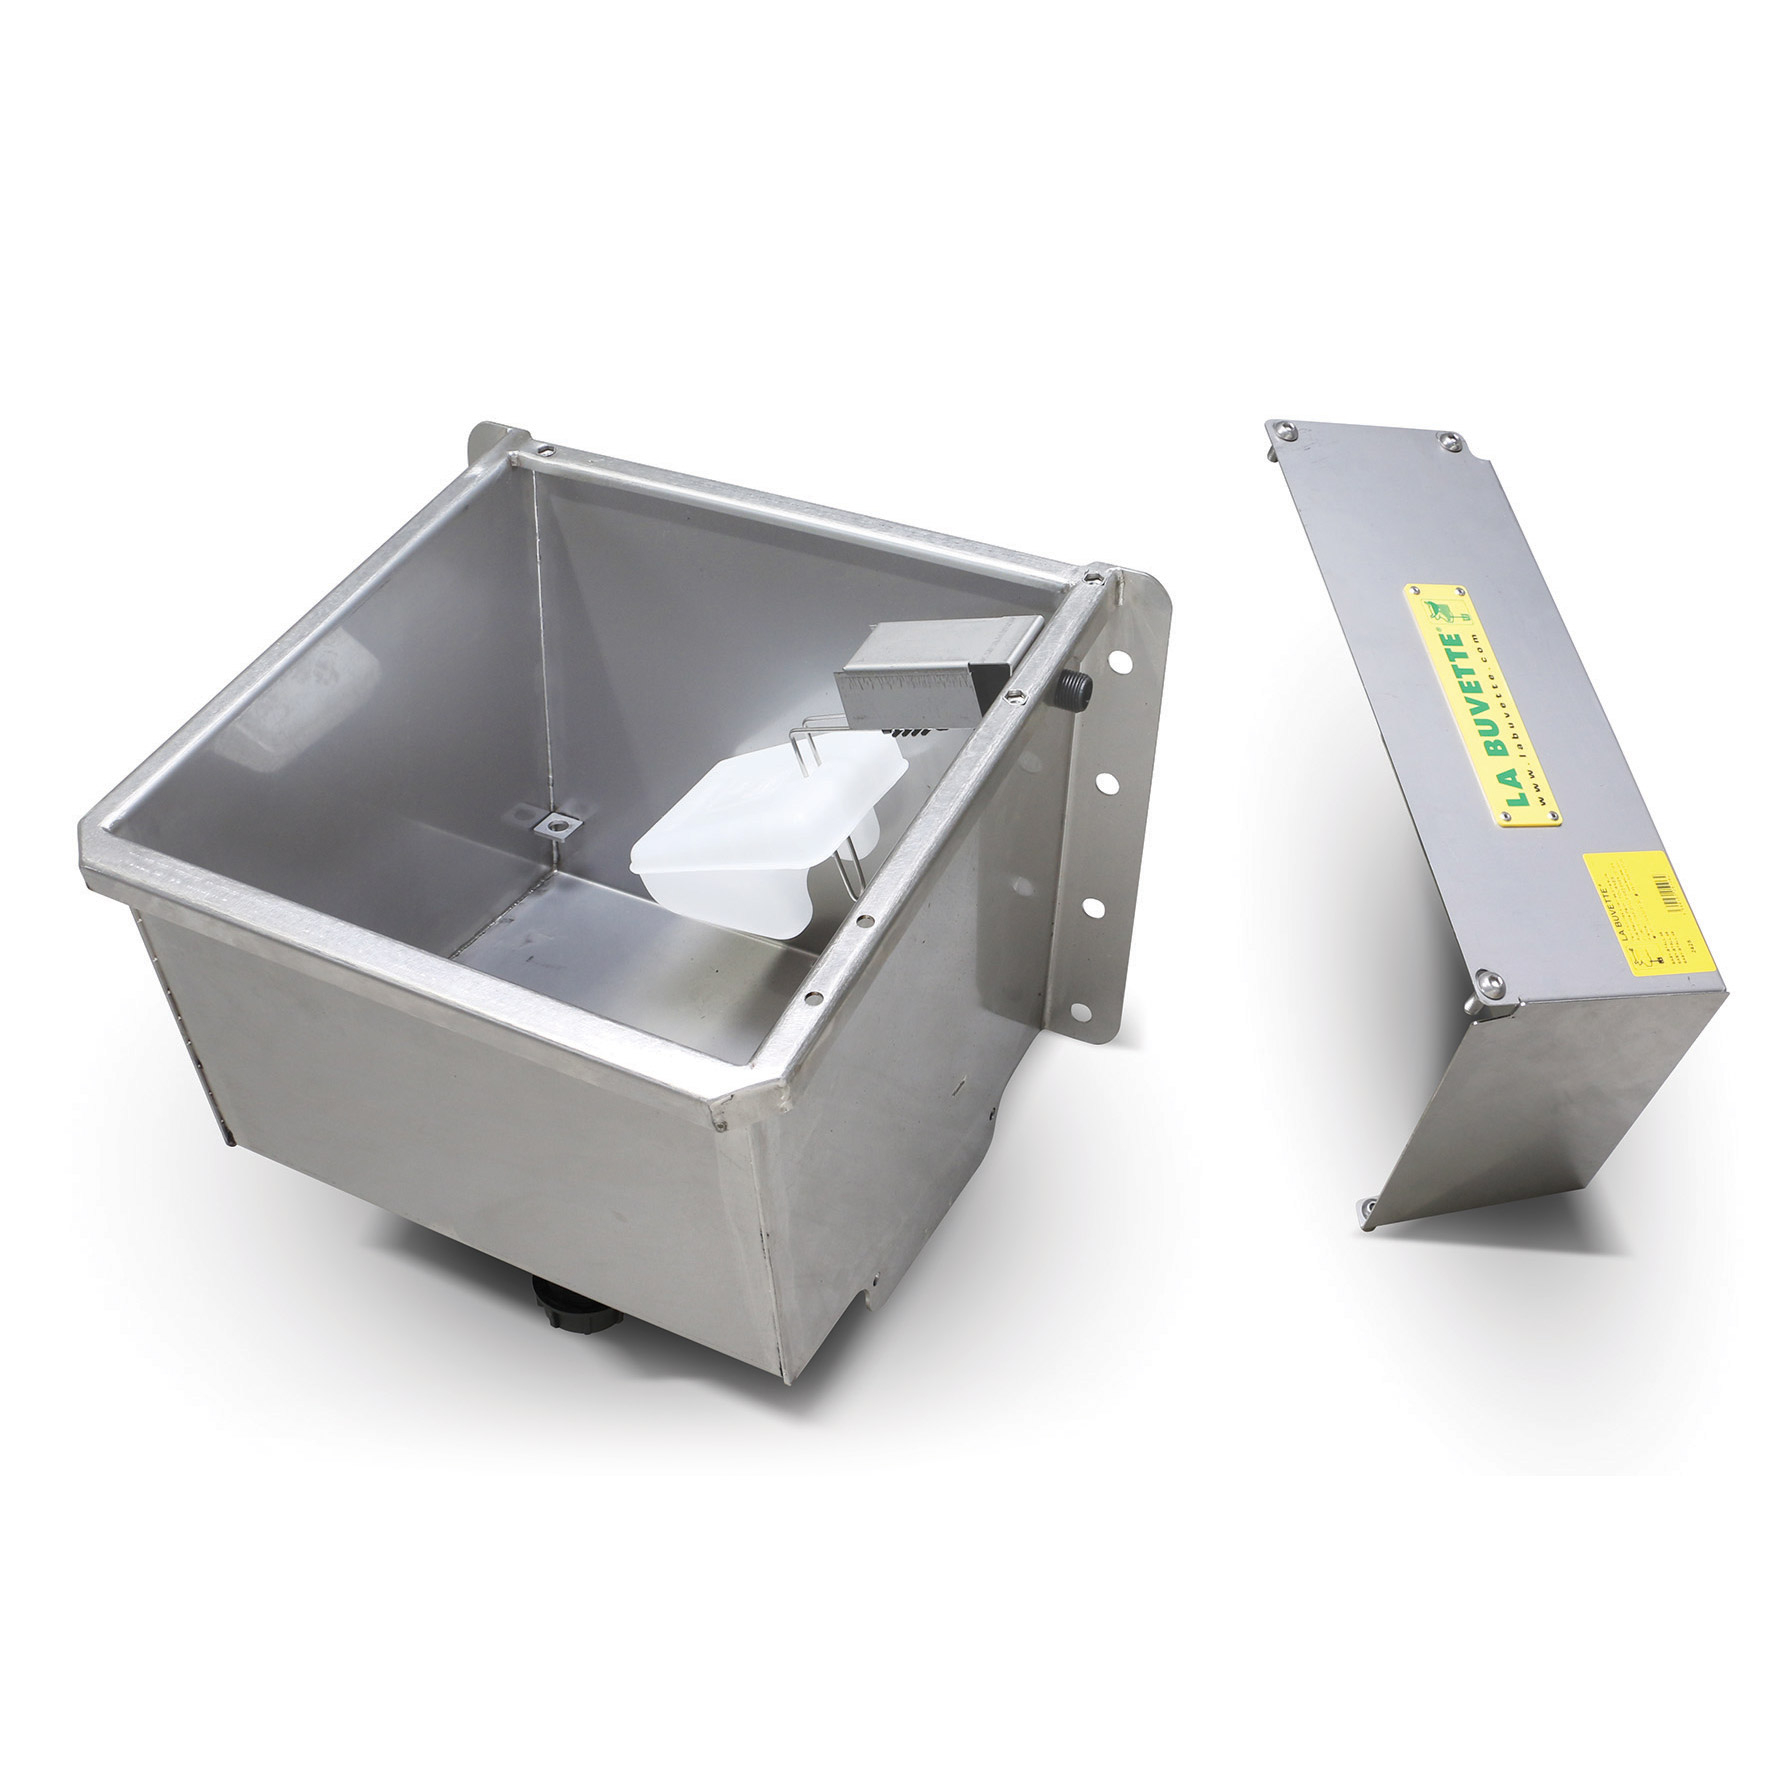 EASY-STALL 45 S.S. Drinking Trough with Float Valve